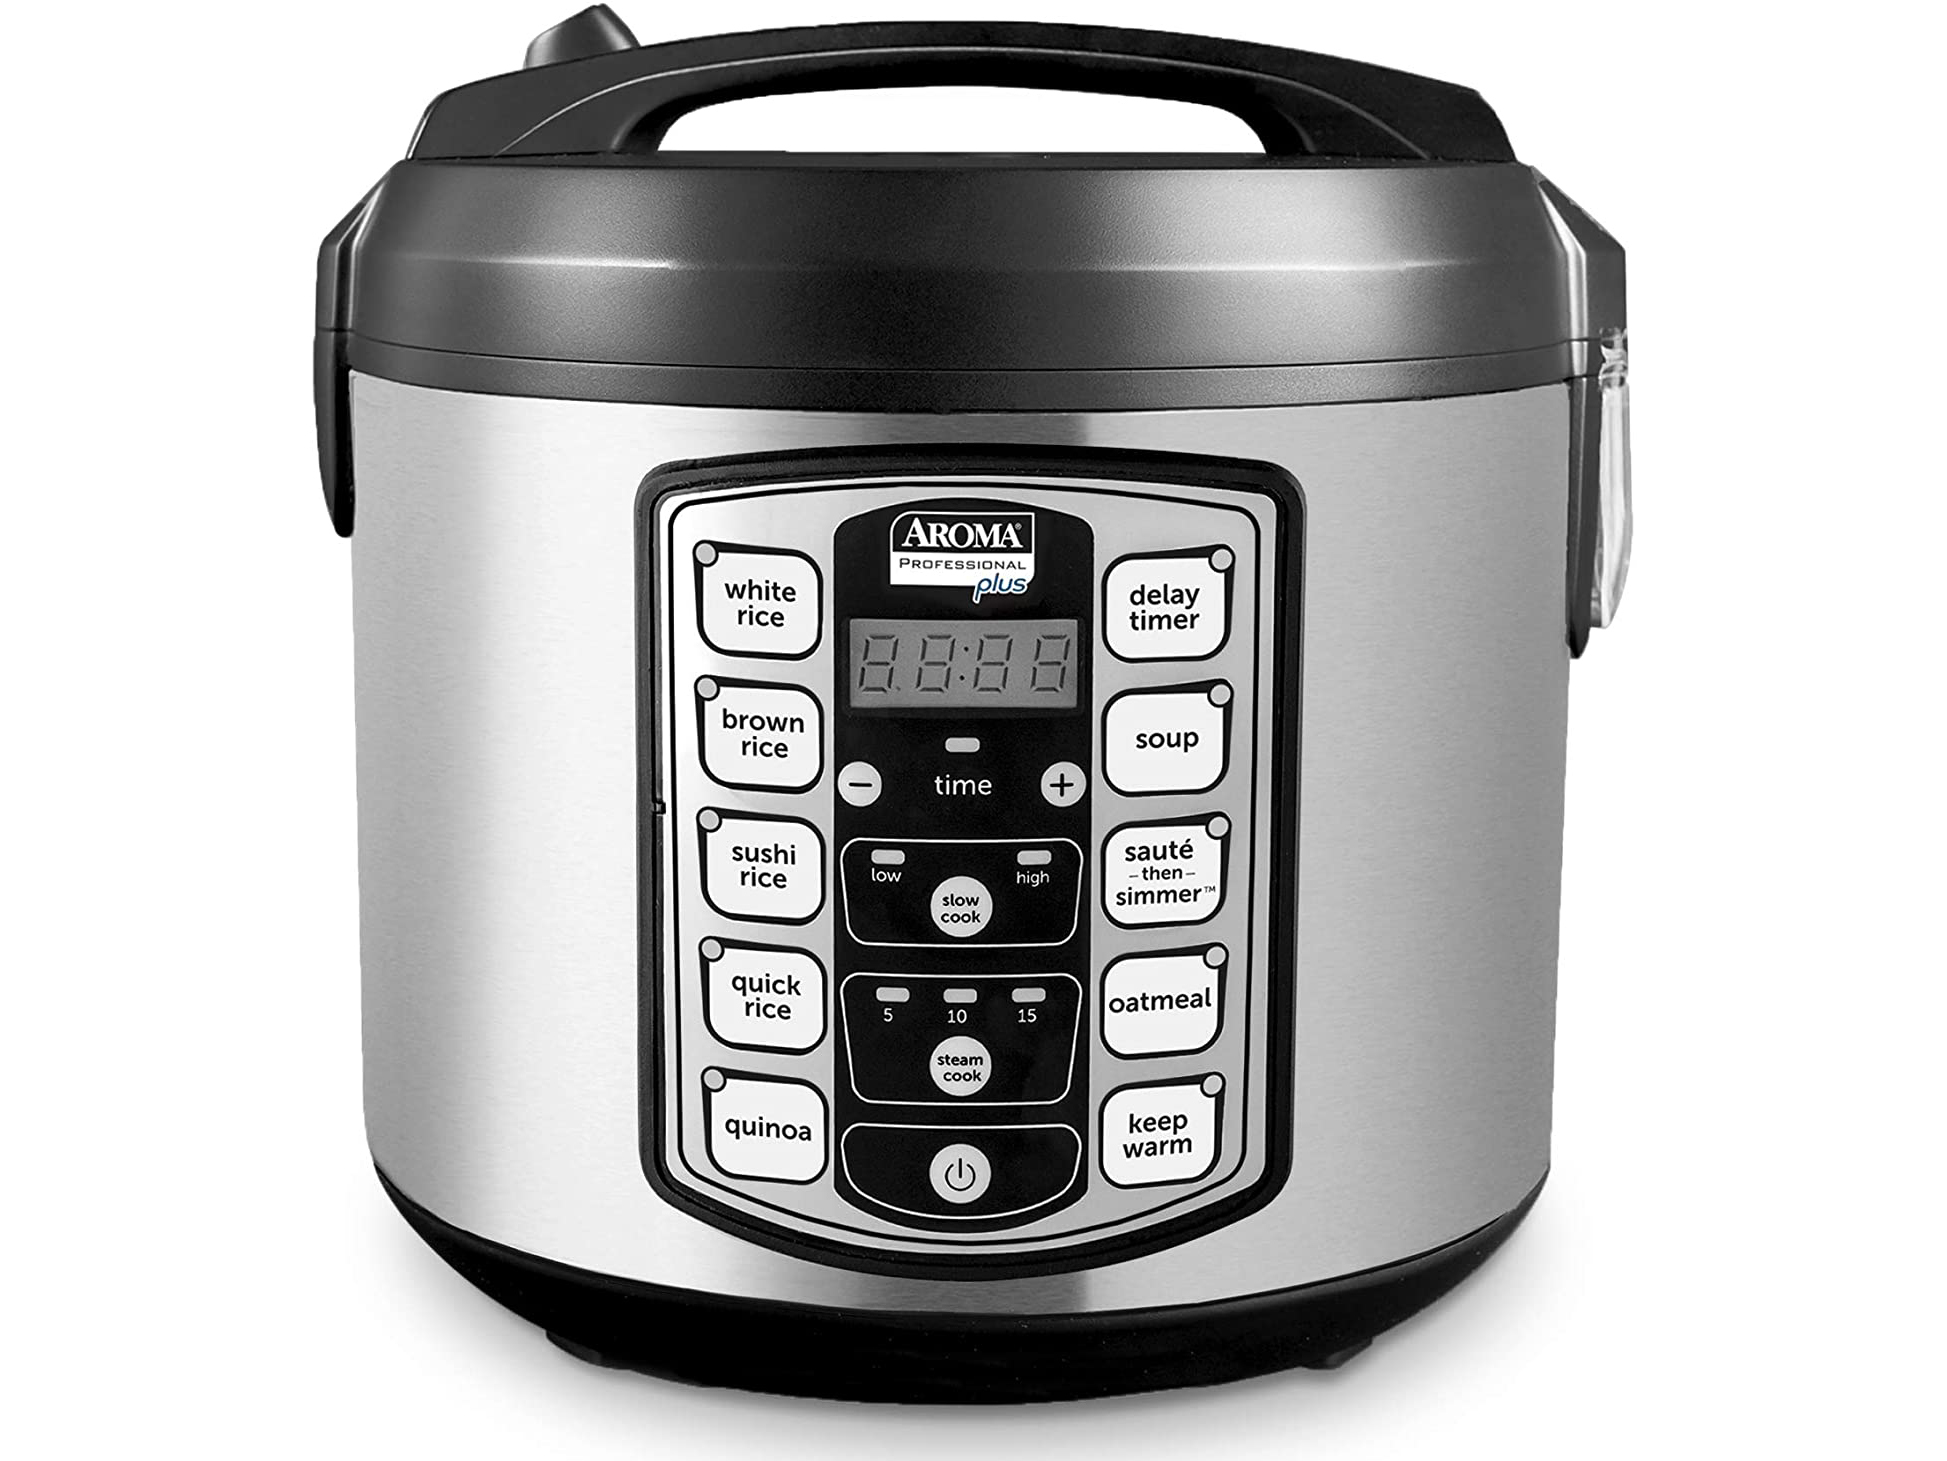 Aroma Housewares Digital Grain Cooker on a white background